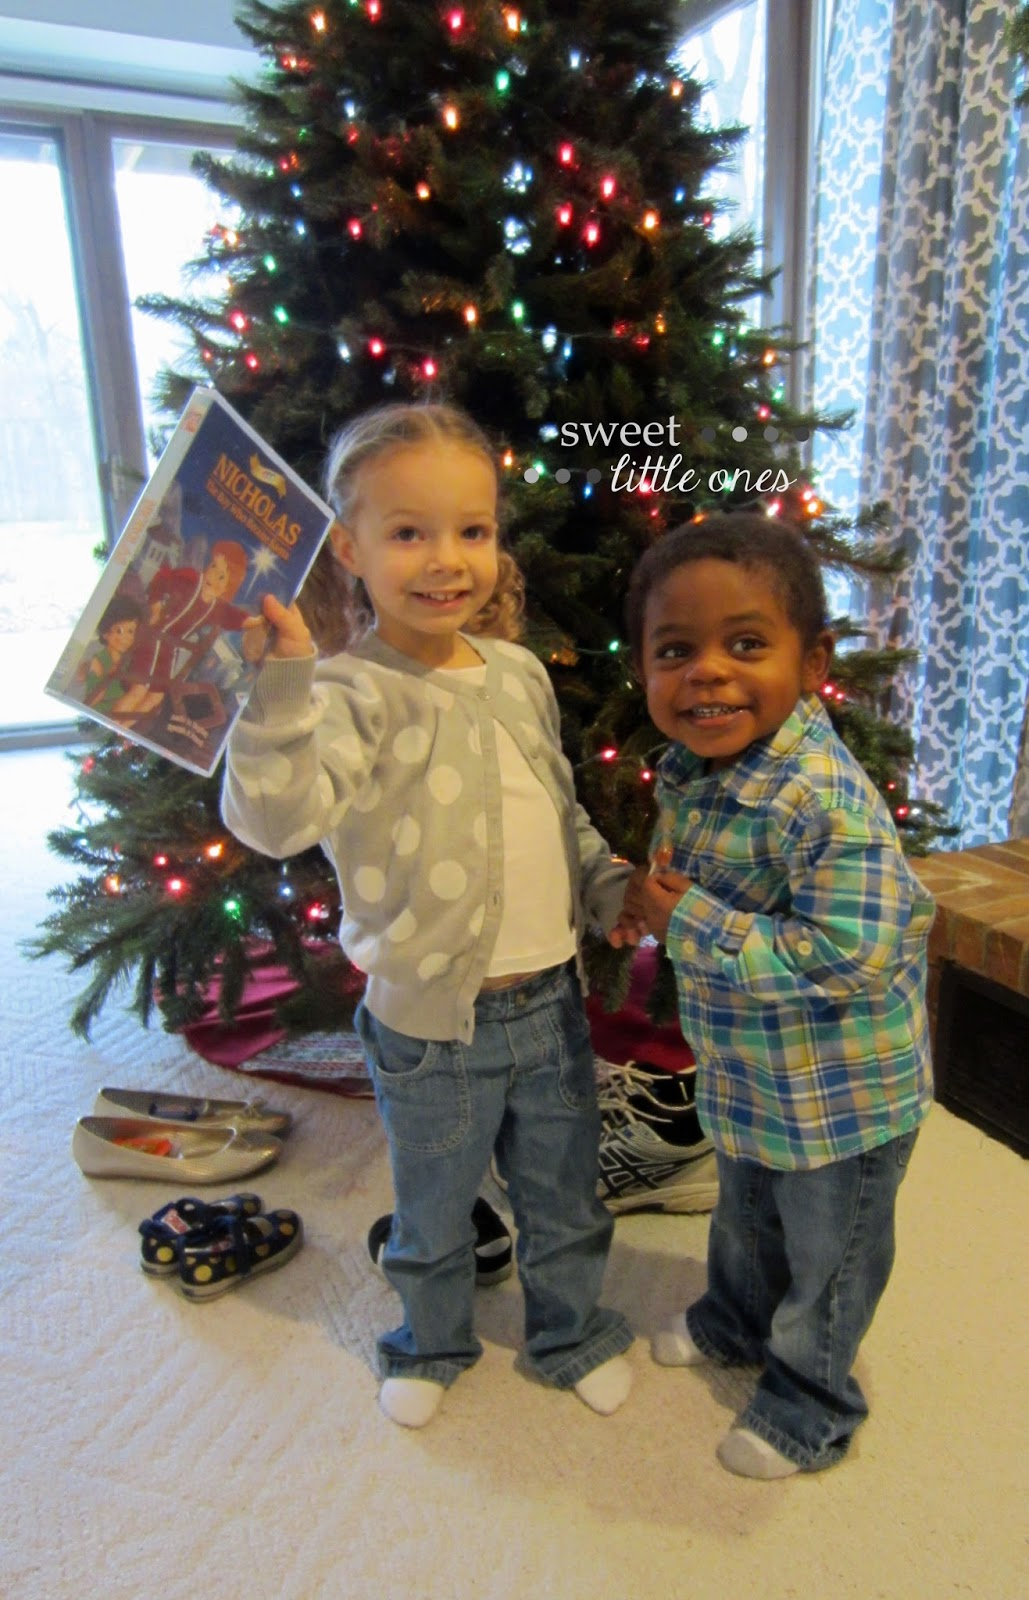 Favorite Family Christmas Traditions - Celebrating Advent with the Saints - St. Nicholas Day Traditions - www.sweetlittleonesblog.com